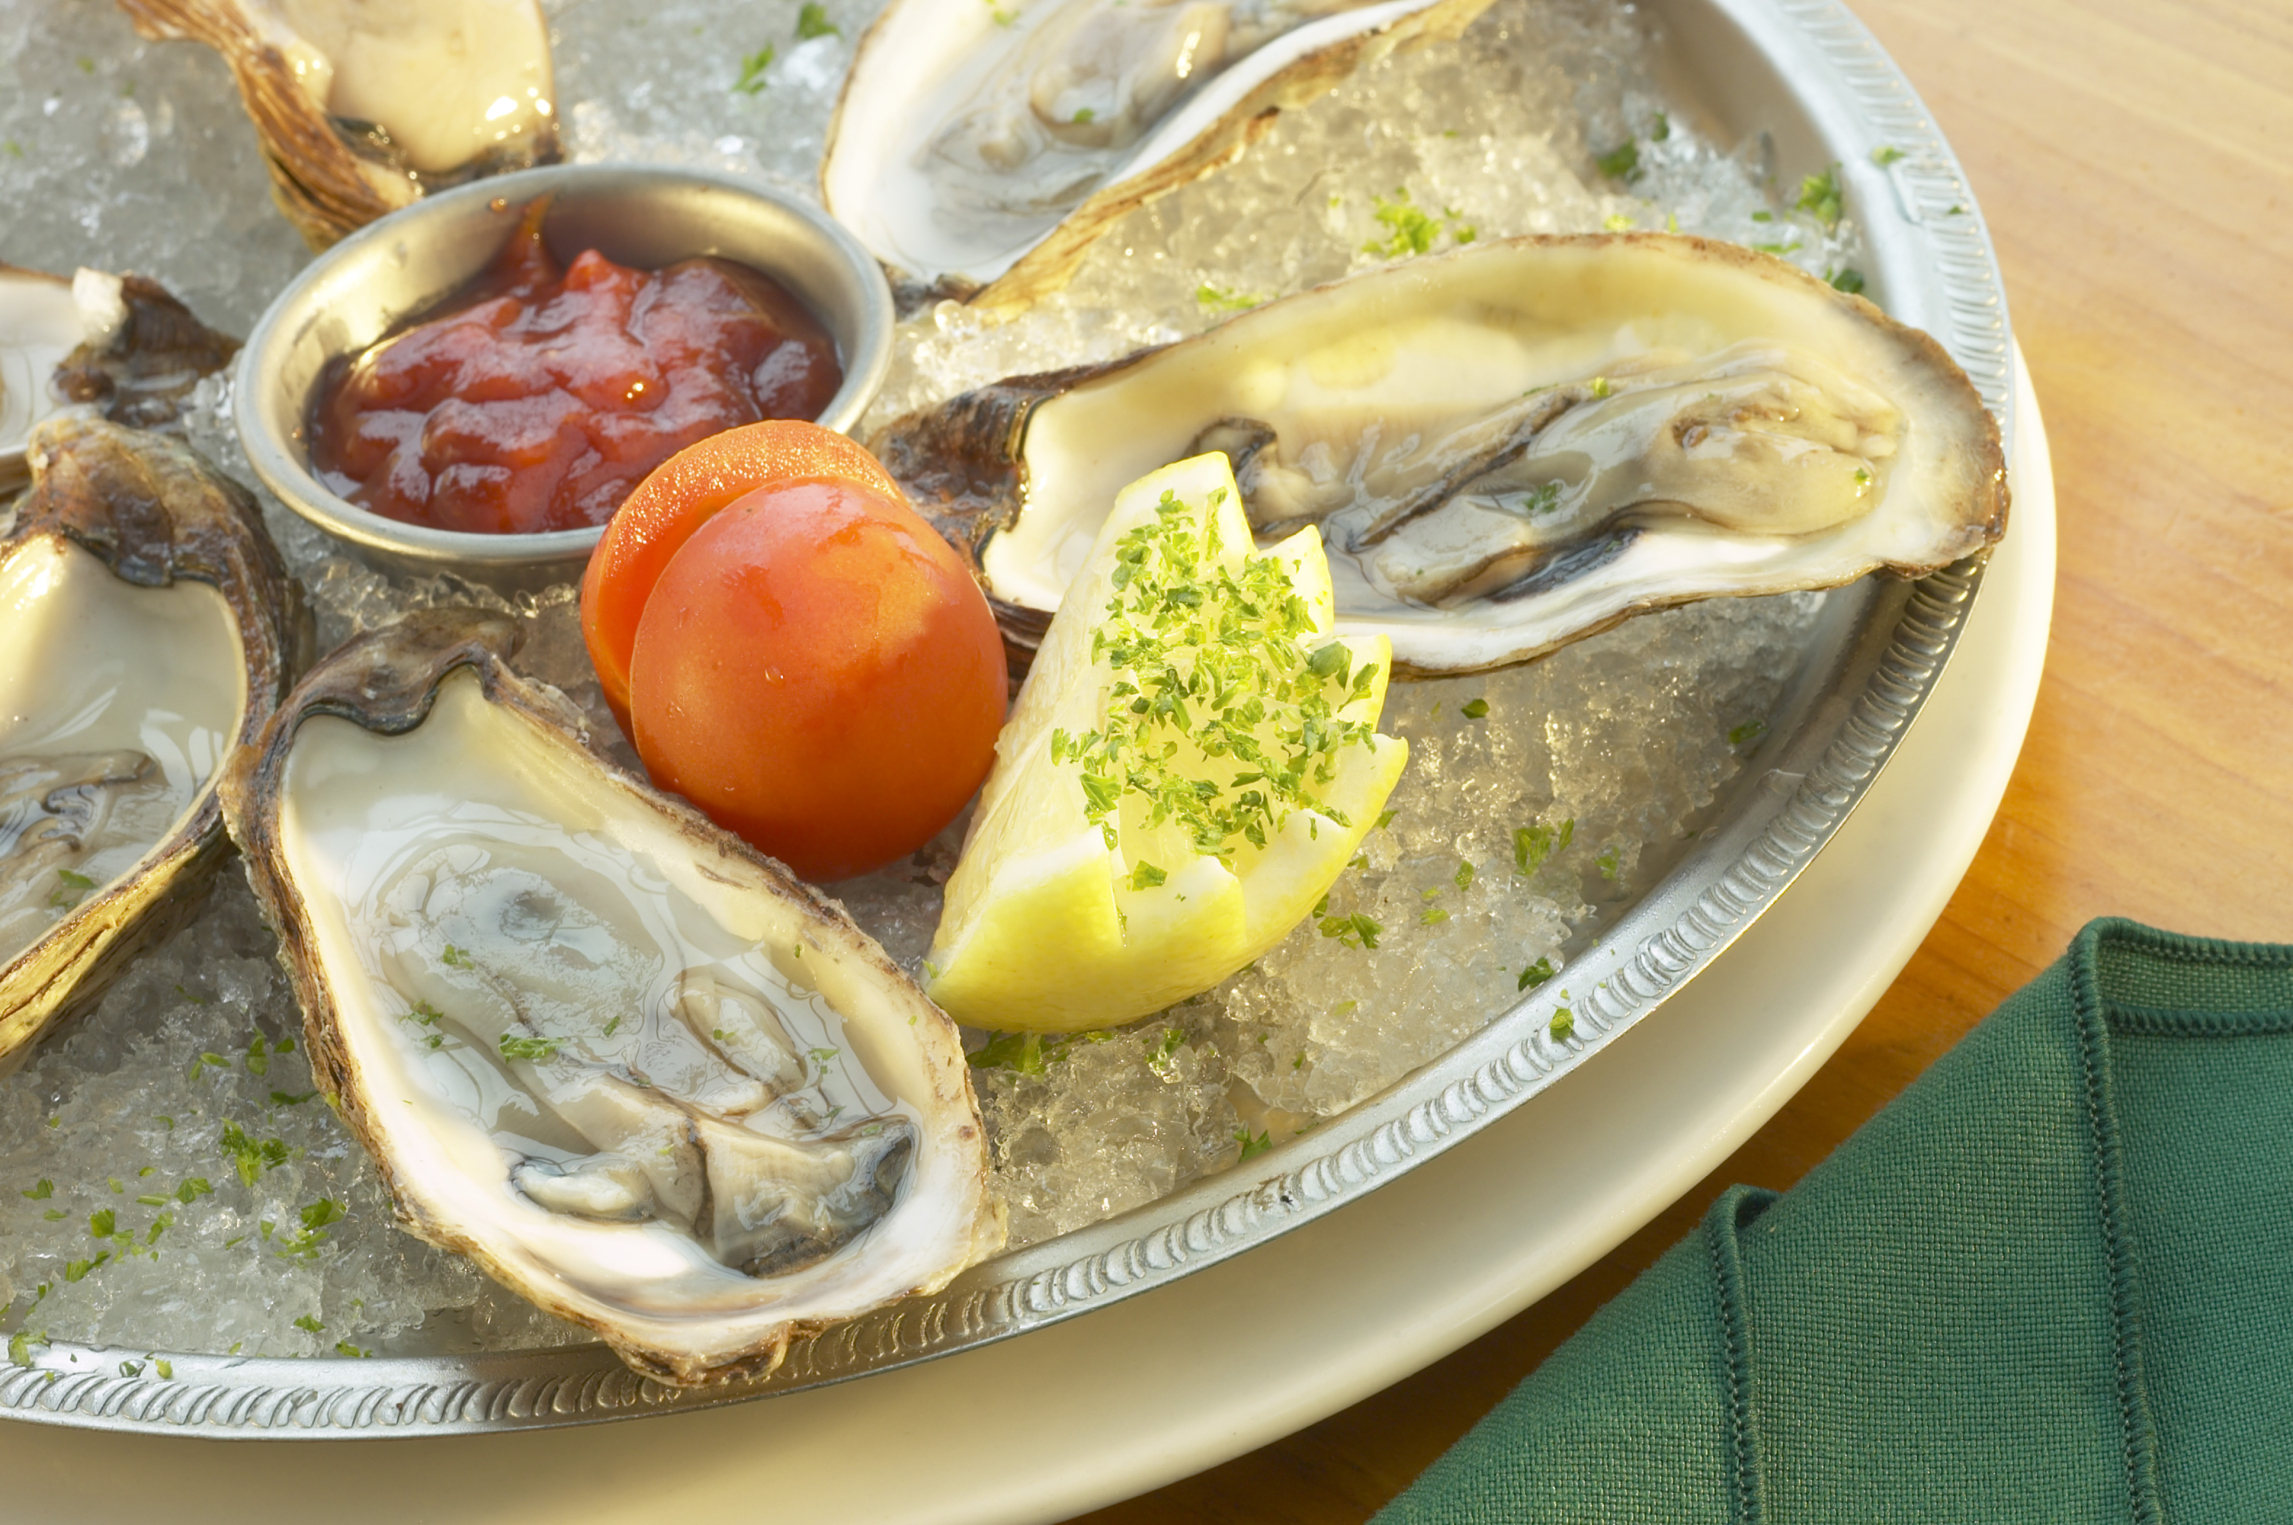 Oysters are the richest dietary source of zinc.